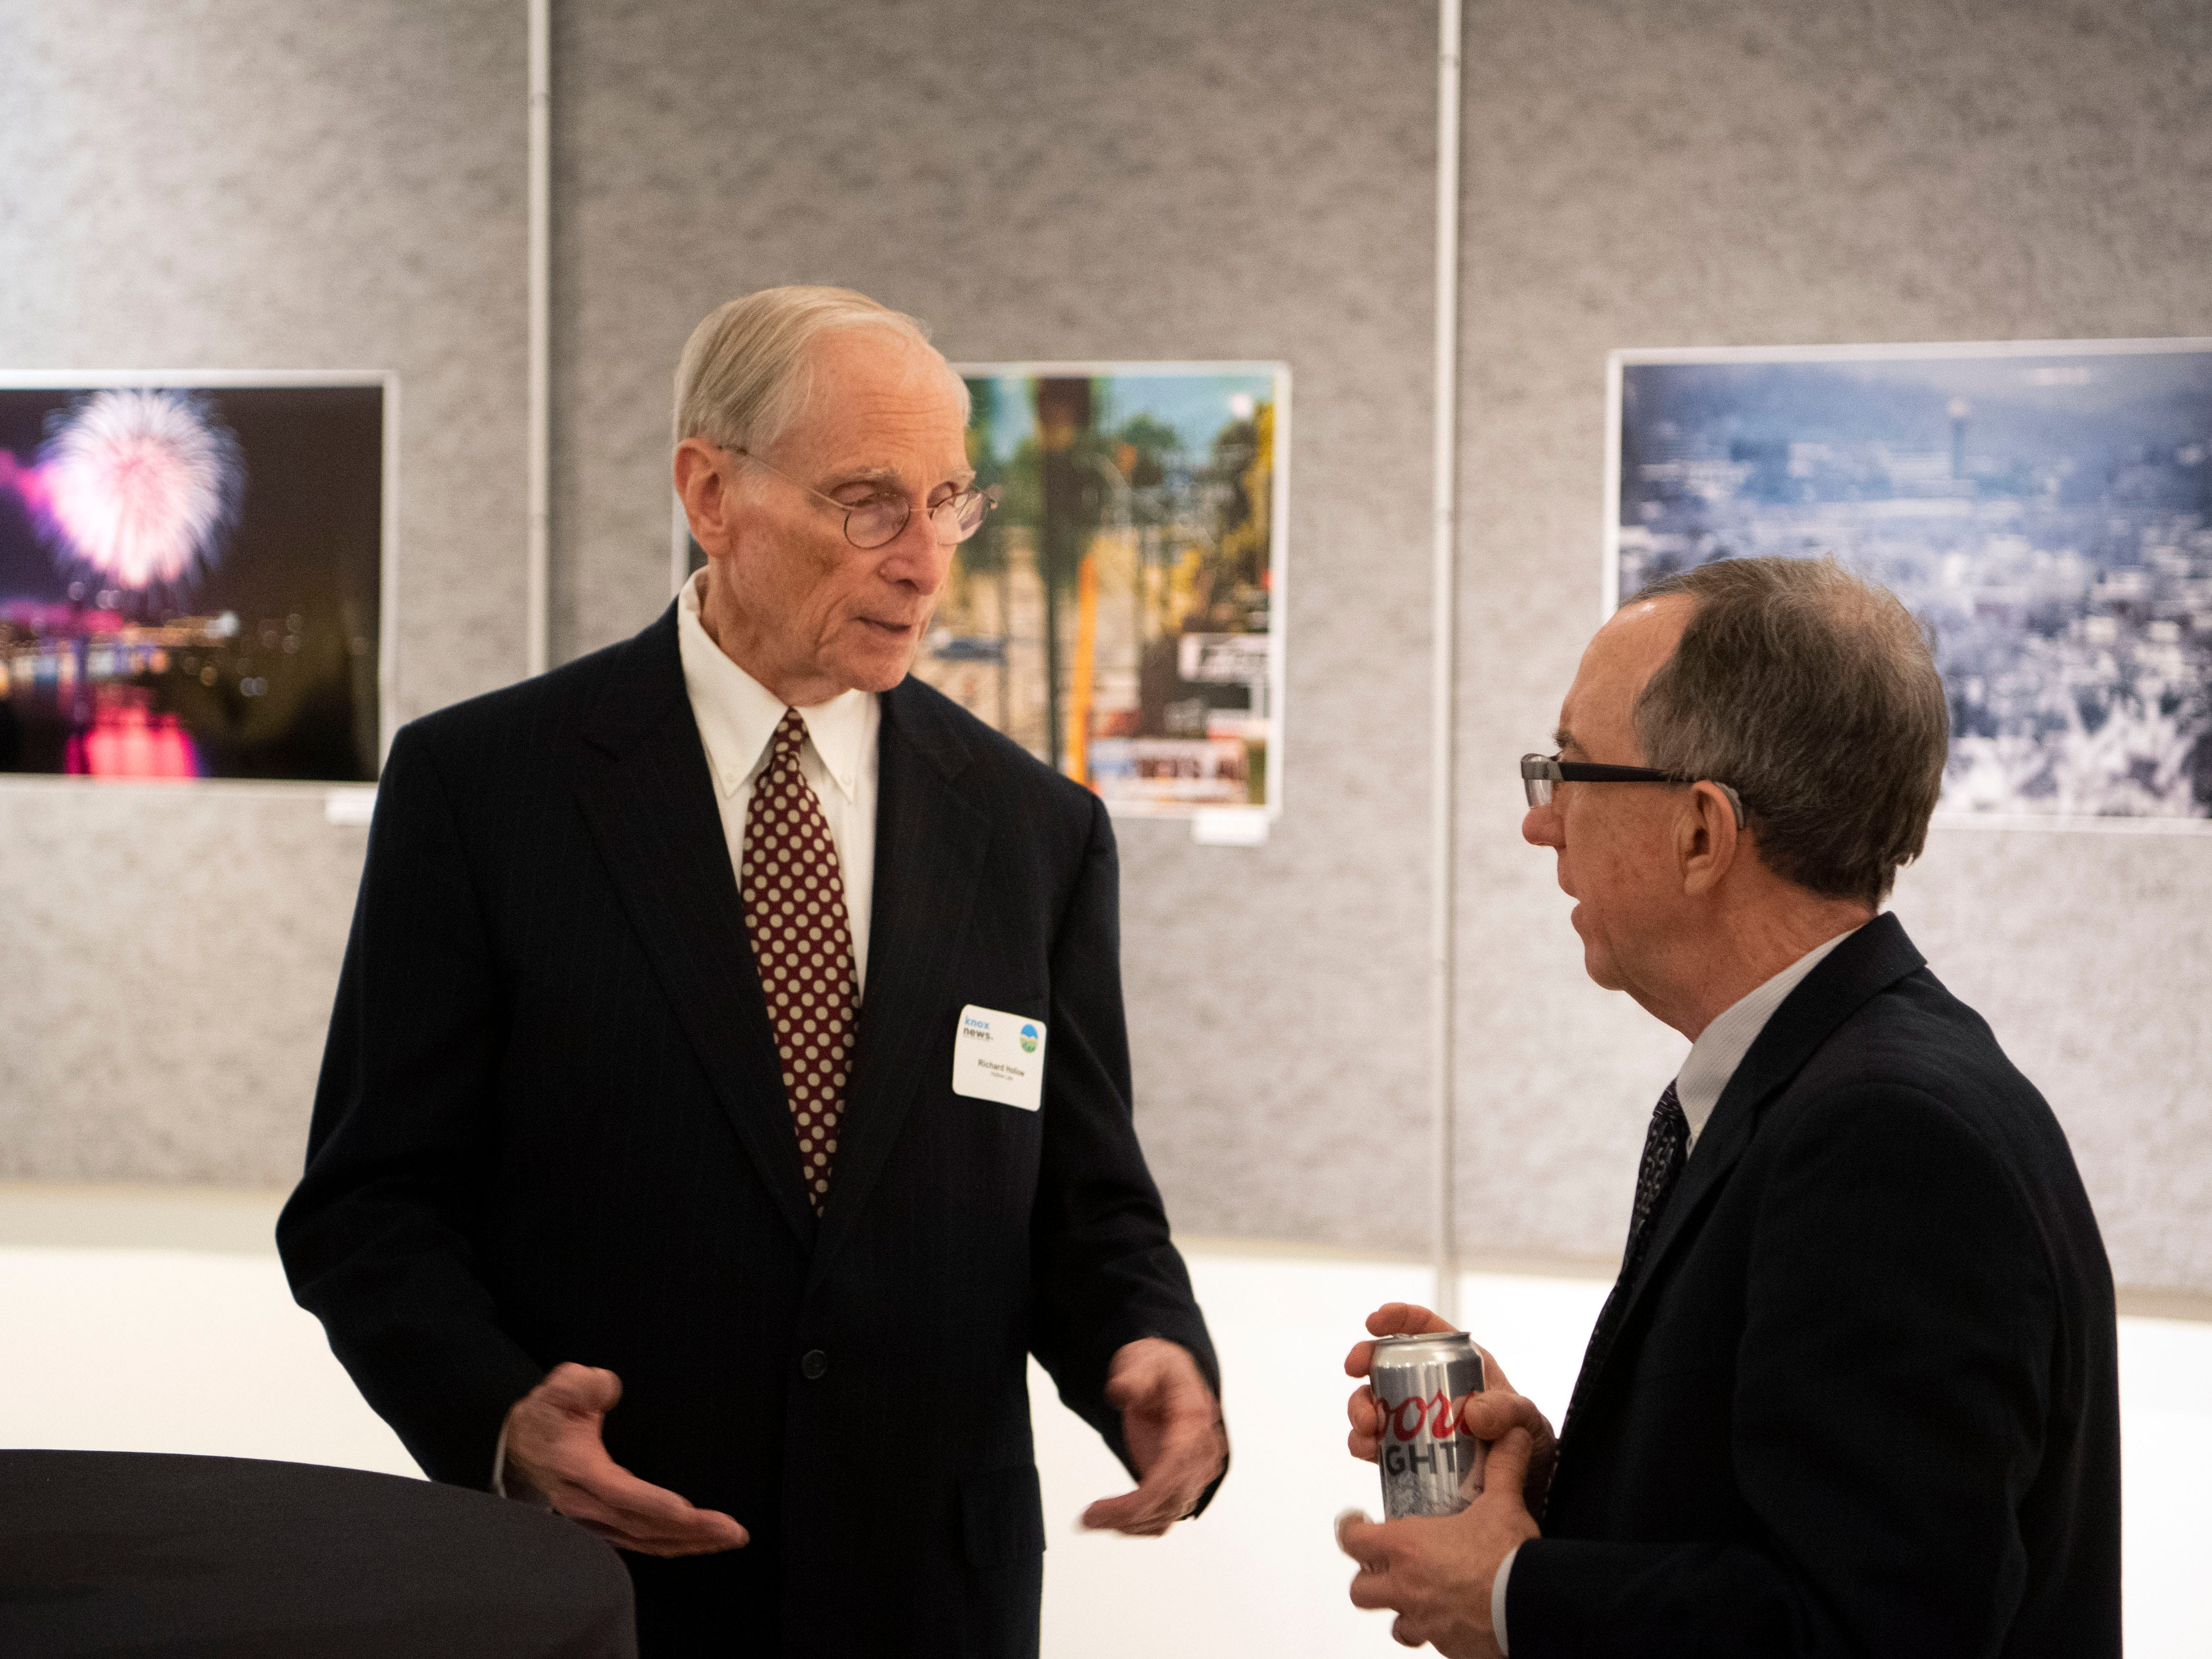 Outgoing News Sentinel executive editor Jack McElroy chats with attorney Richard Hollow during a reception recognizing McElroy's work in his 17 years at the News Sentinel. Hollow was the Sentinel's attorney when McElroy filed lawsuit against Knox County over violations of the state's Sunshine Law in 2007.